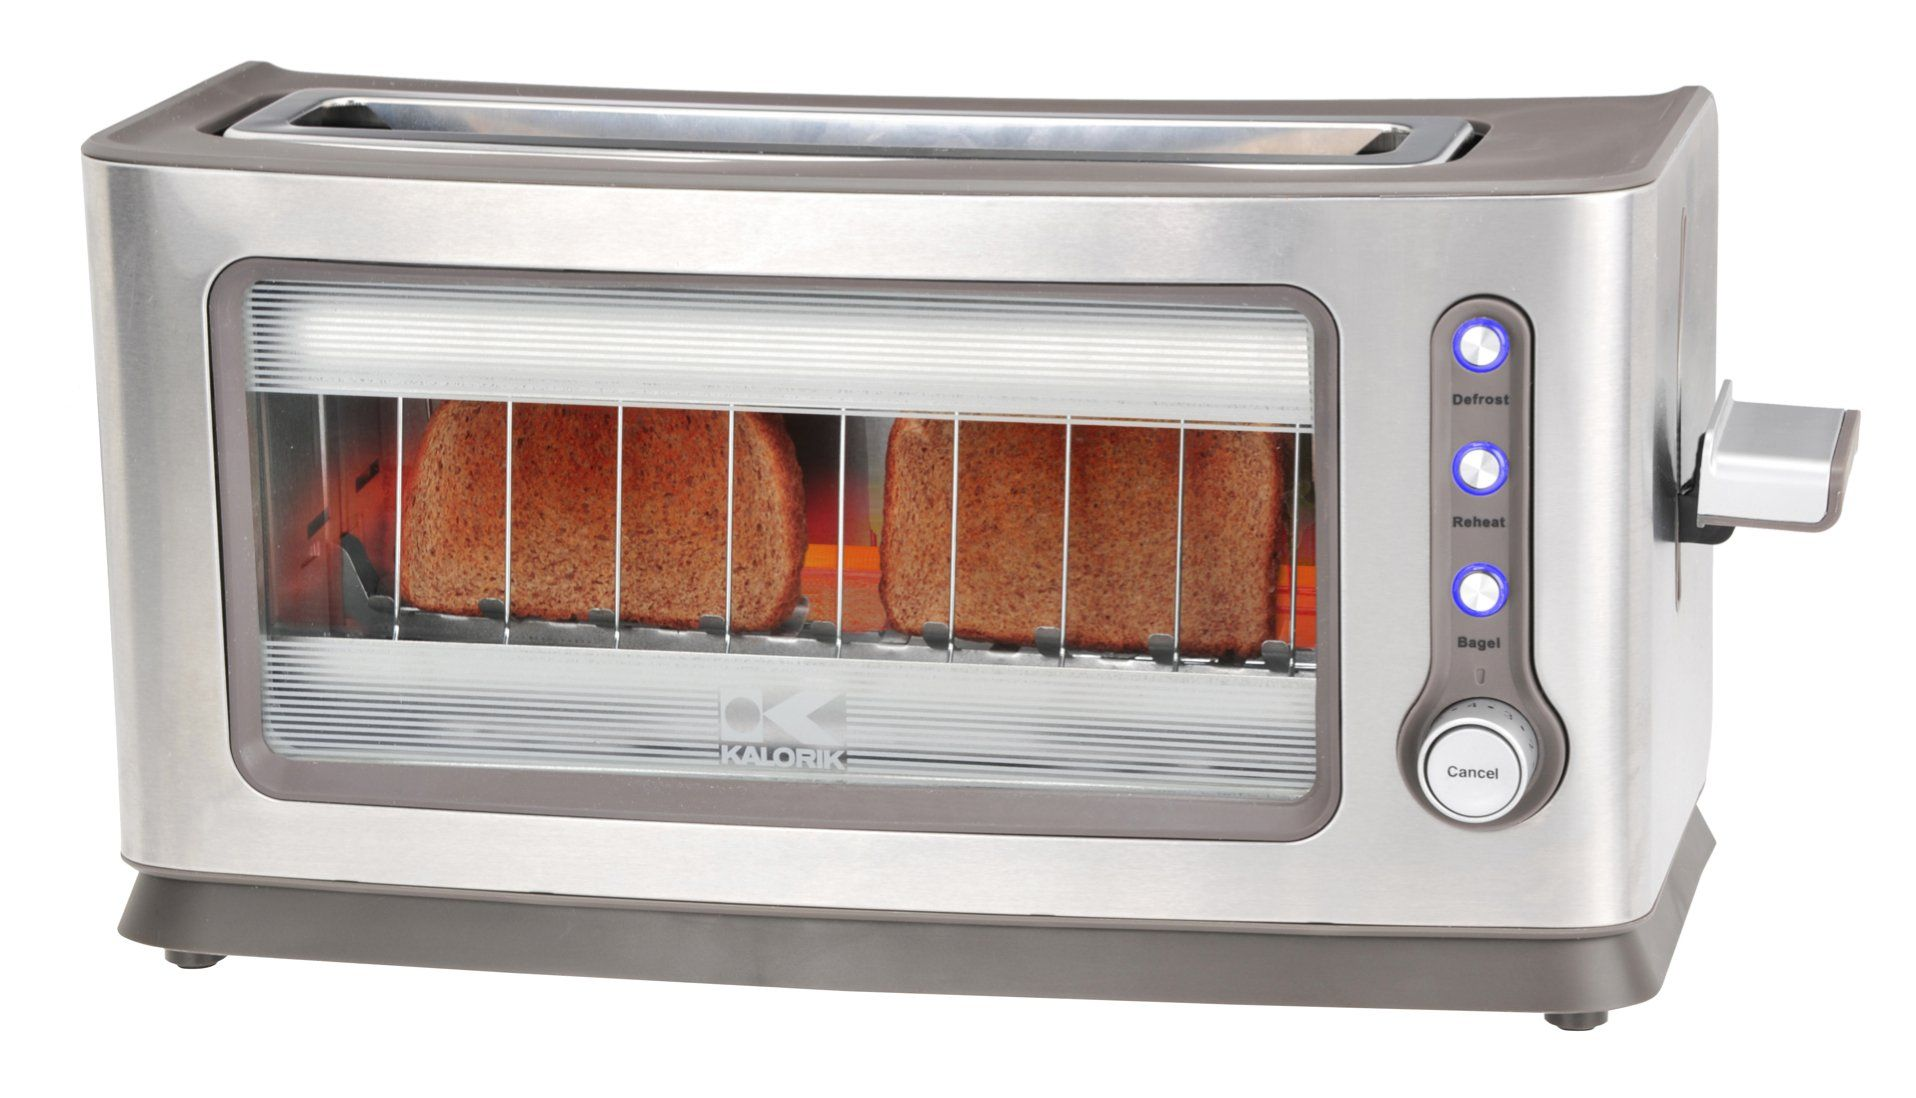 p ebay steel res content s best cancel inflow kalorik w inflowcomponent toaster global slice copper stainless